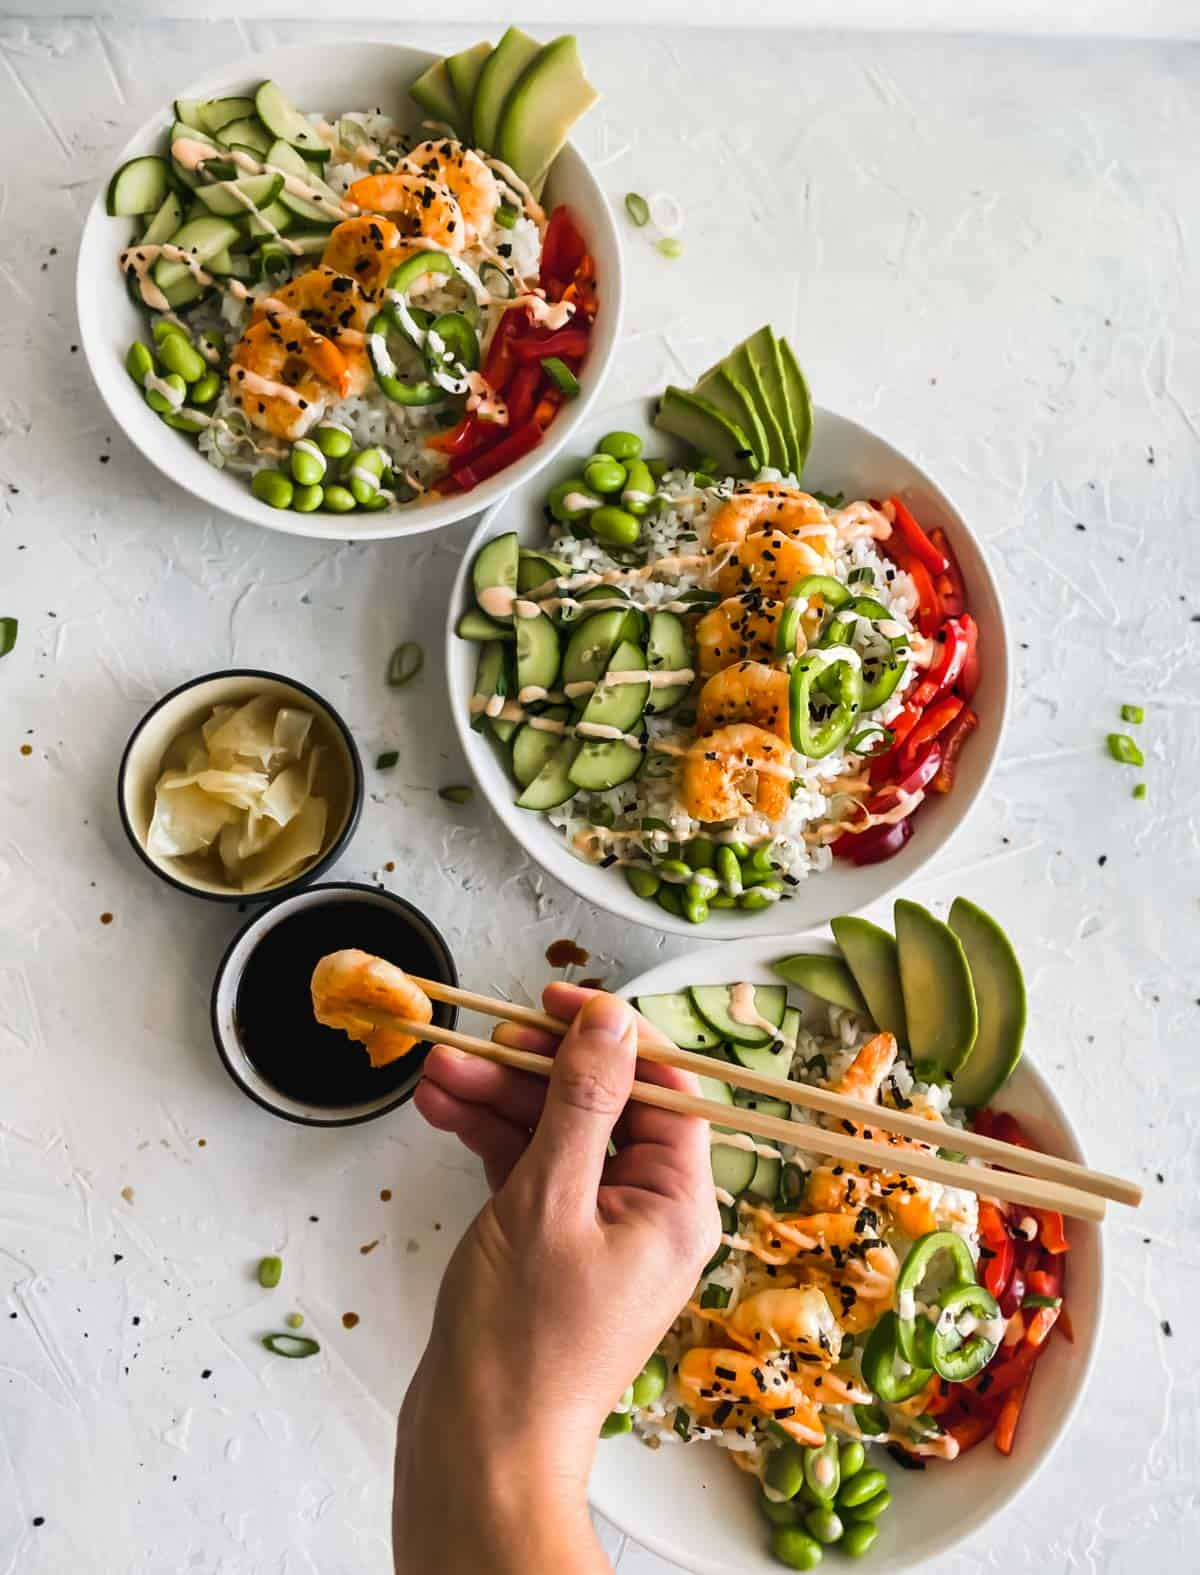 Shrimp Poke Bowls and a hand holding chopsticks with a piece of shrimp dunked in soy sauce